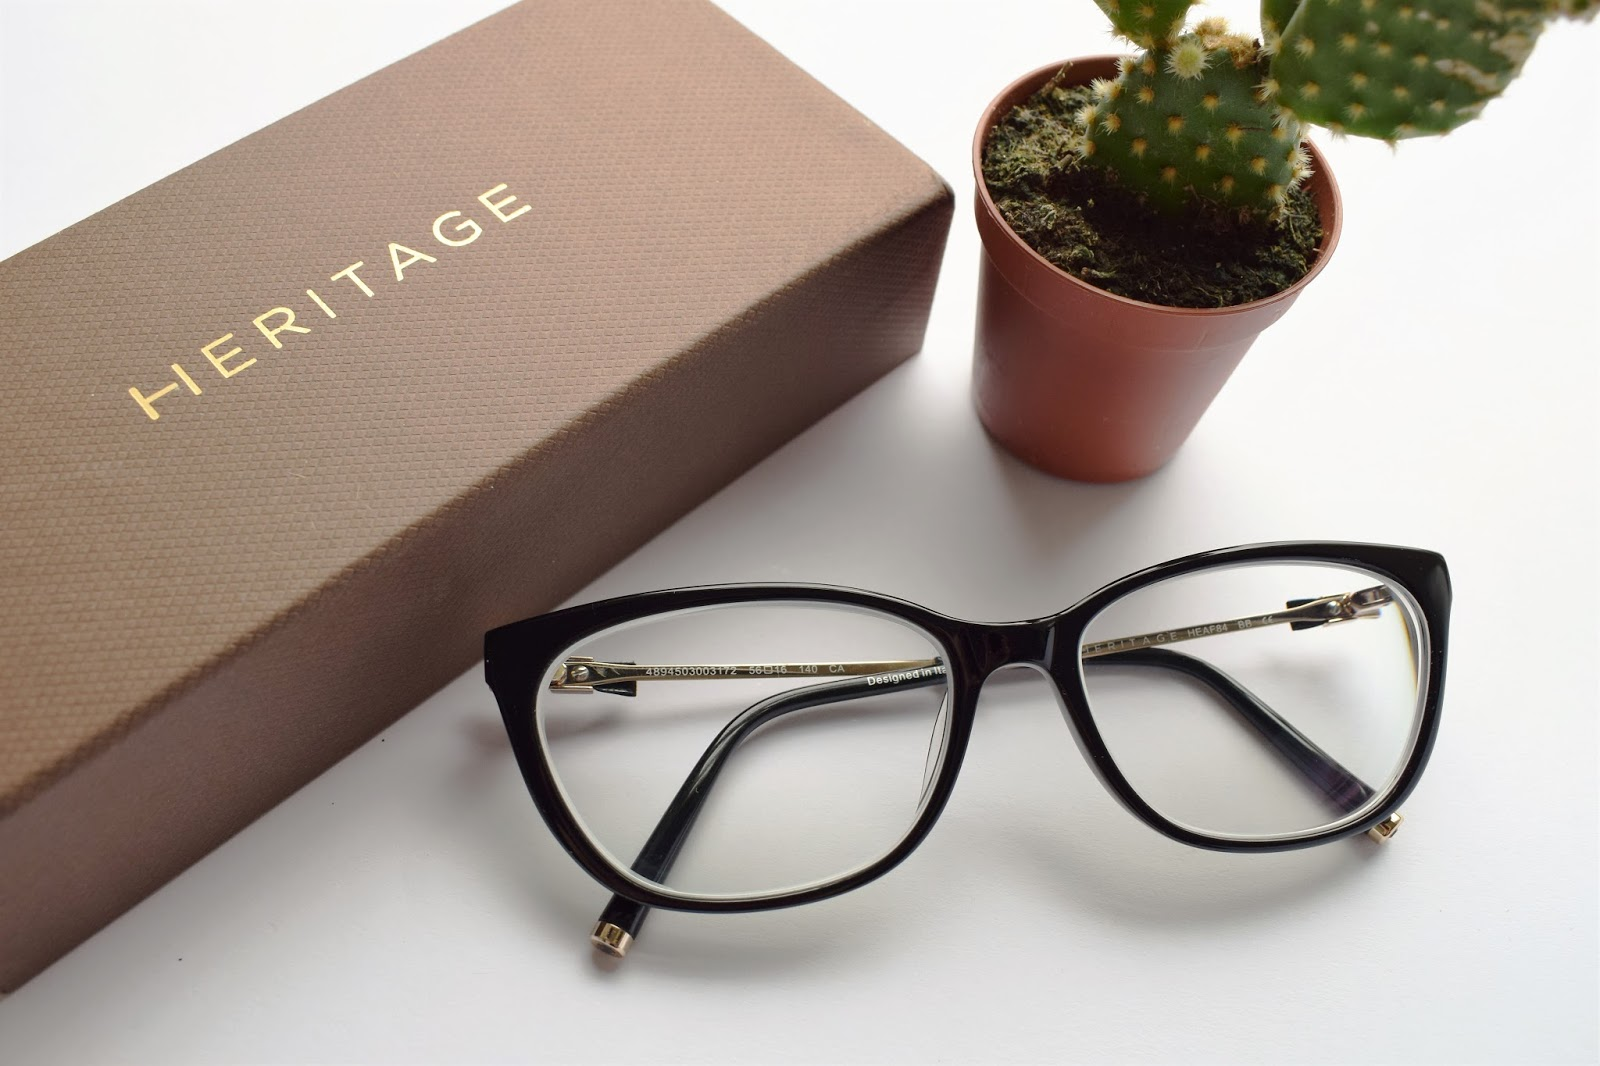 Vision Express, Heritage range glasses, exclusive brands at Vision Express, Chanel glasses dupe, cactus,